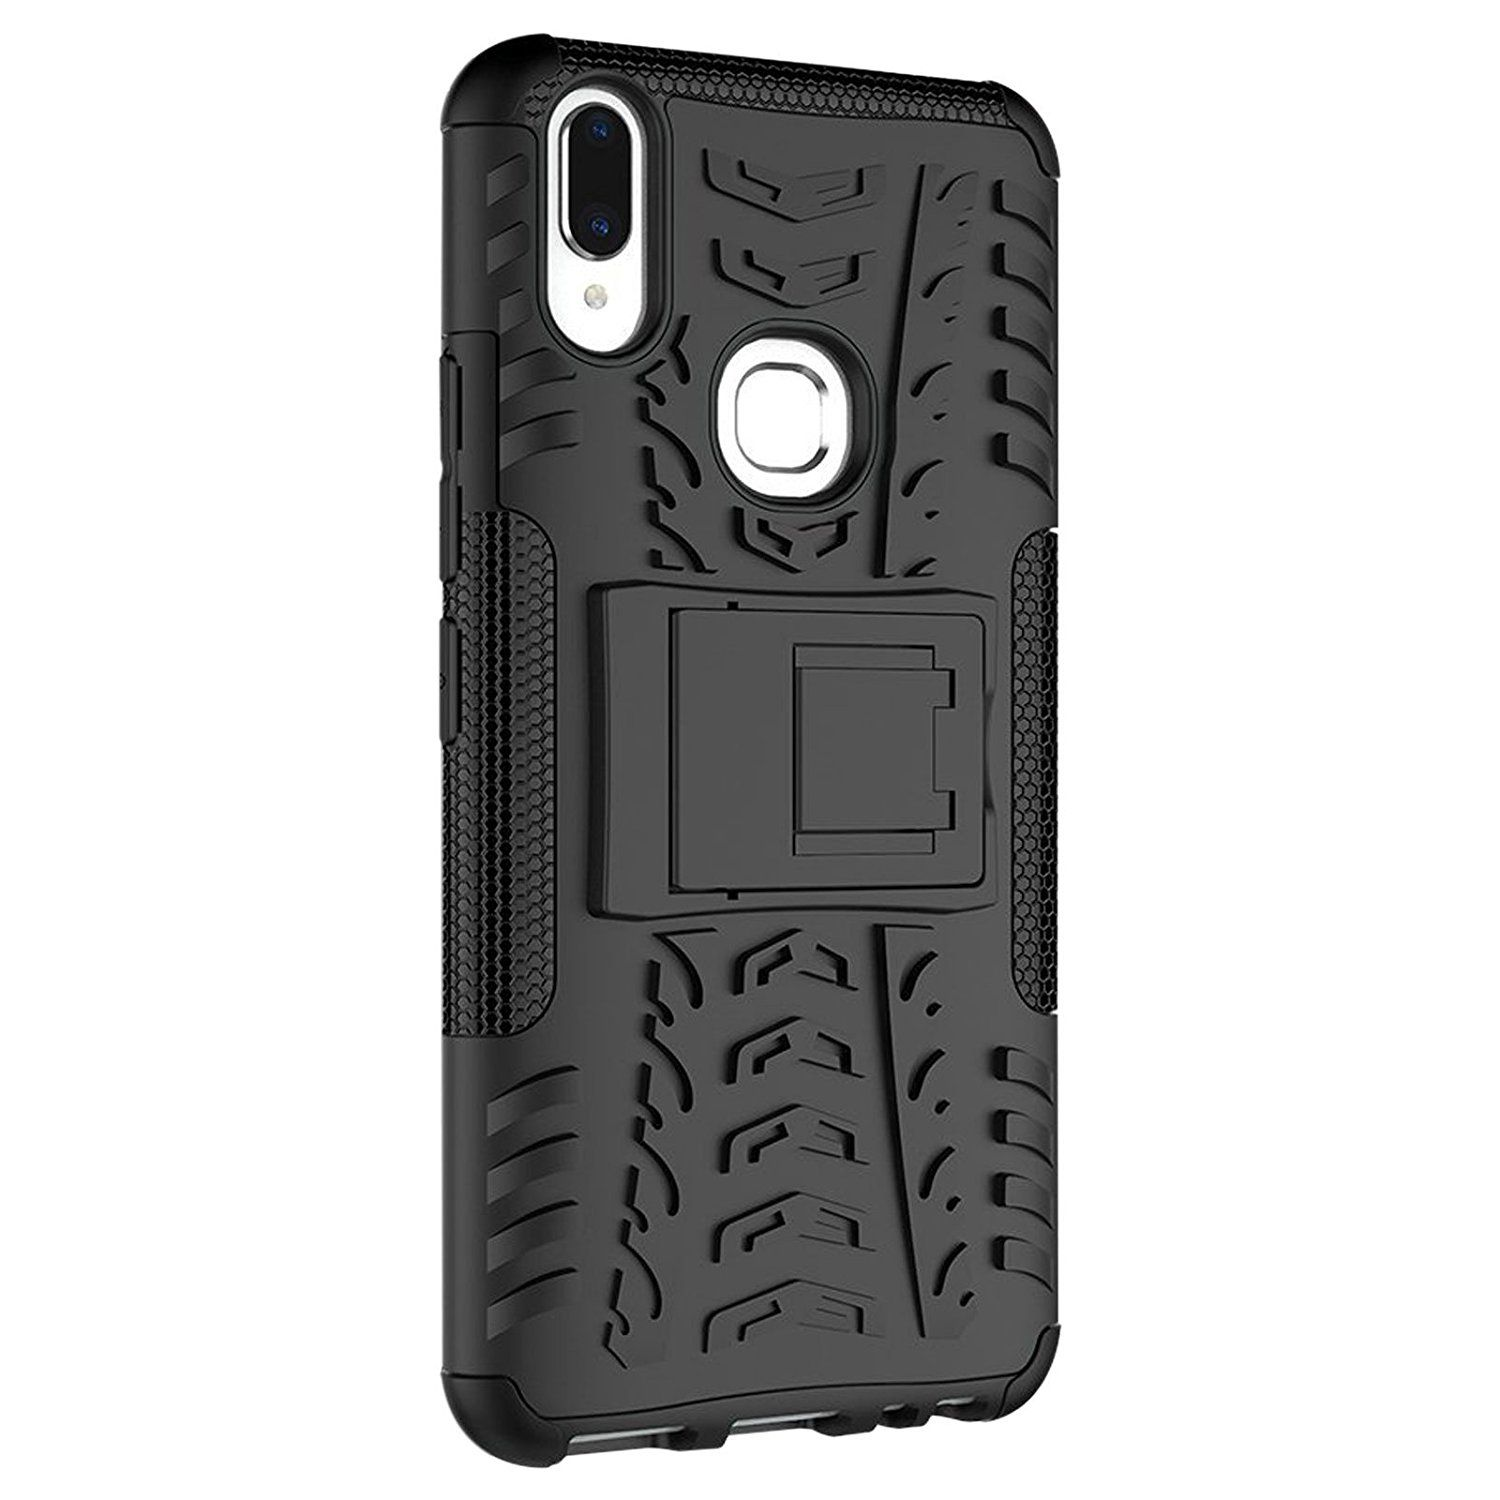 Vivo V9 Youth Cases with Stands Explocart Black